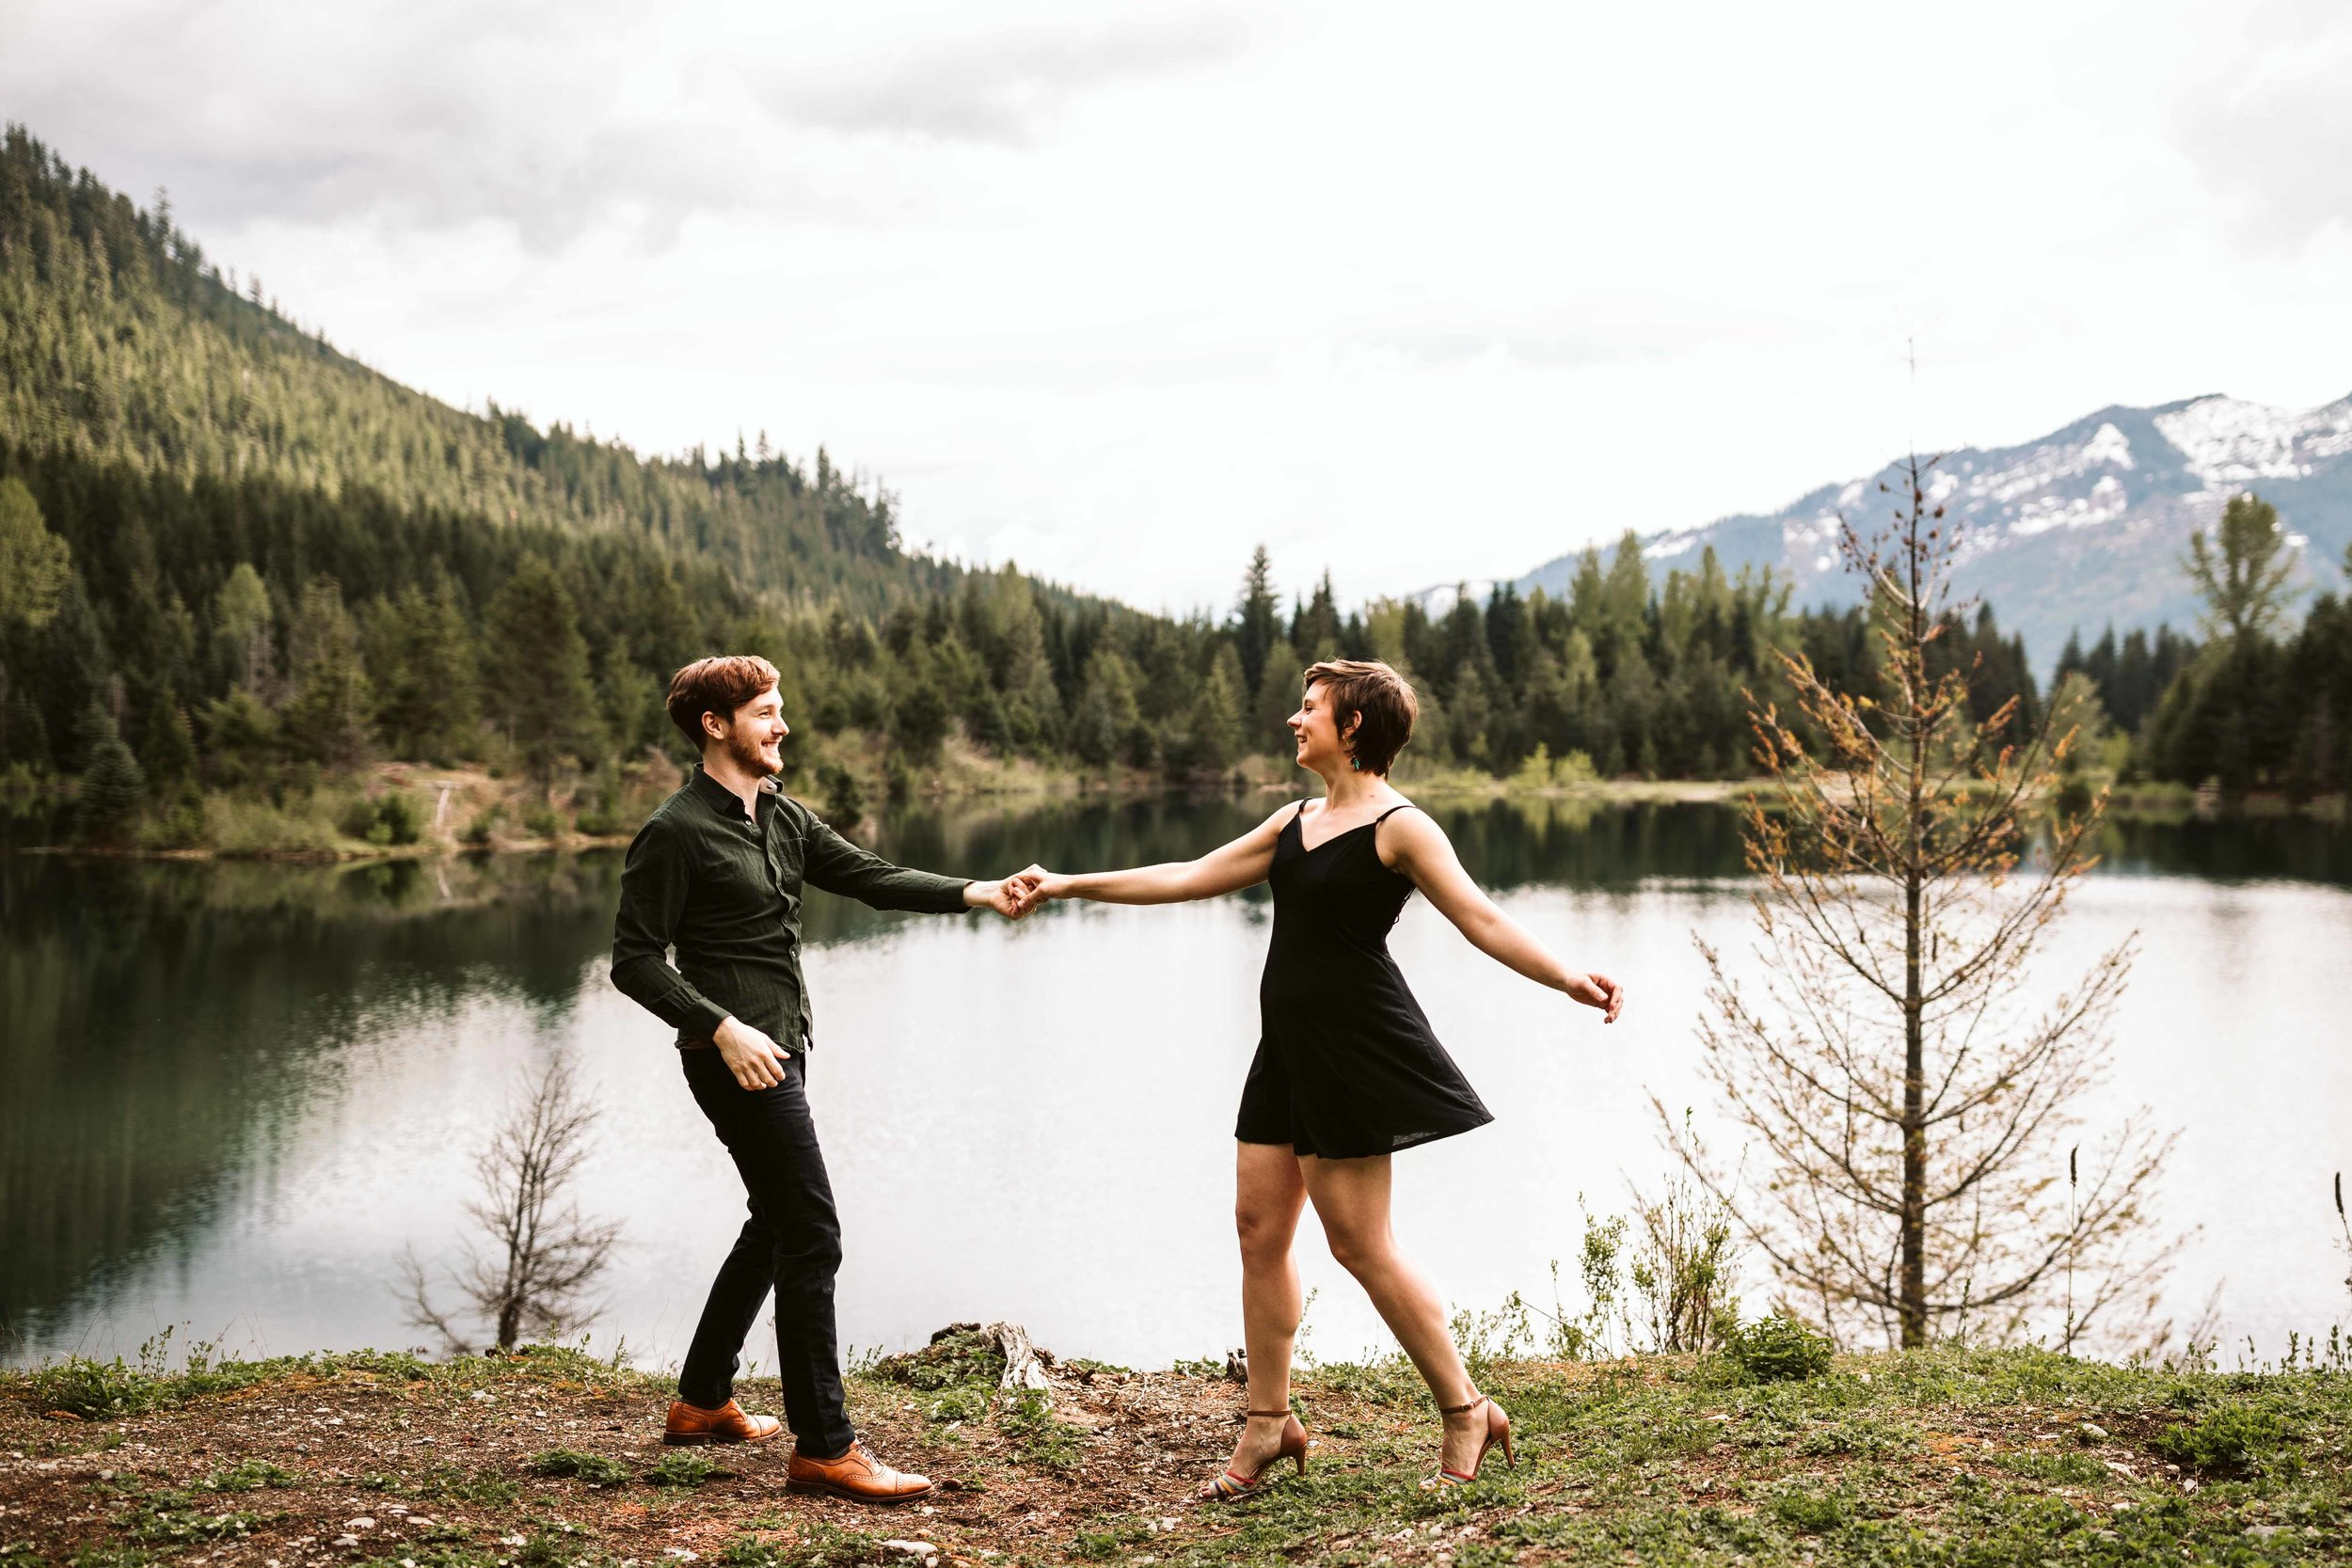 gold-creek-pond-trail-engagement-34.jpg